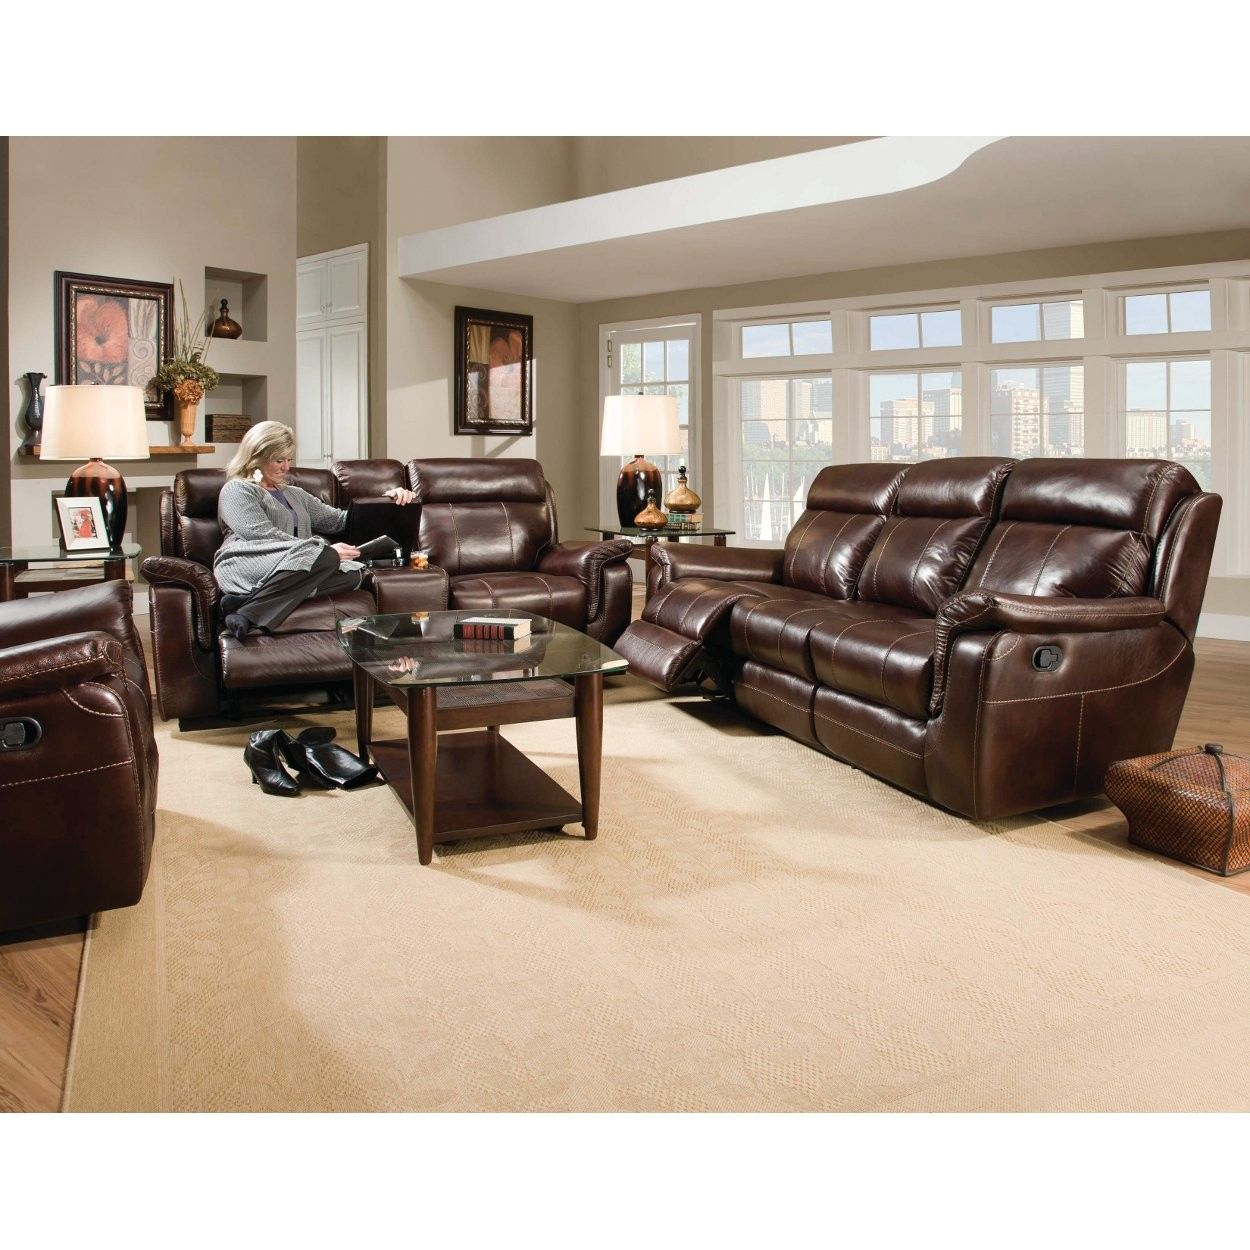 Best 2019 Conns Furniture Corporate Office Country Home 400 x 300